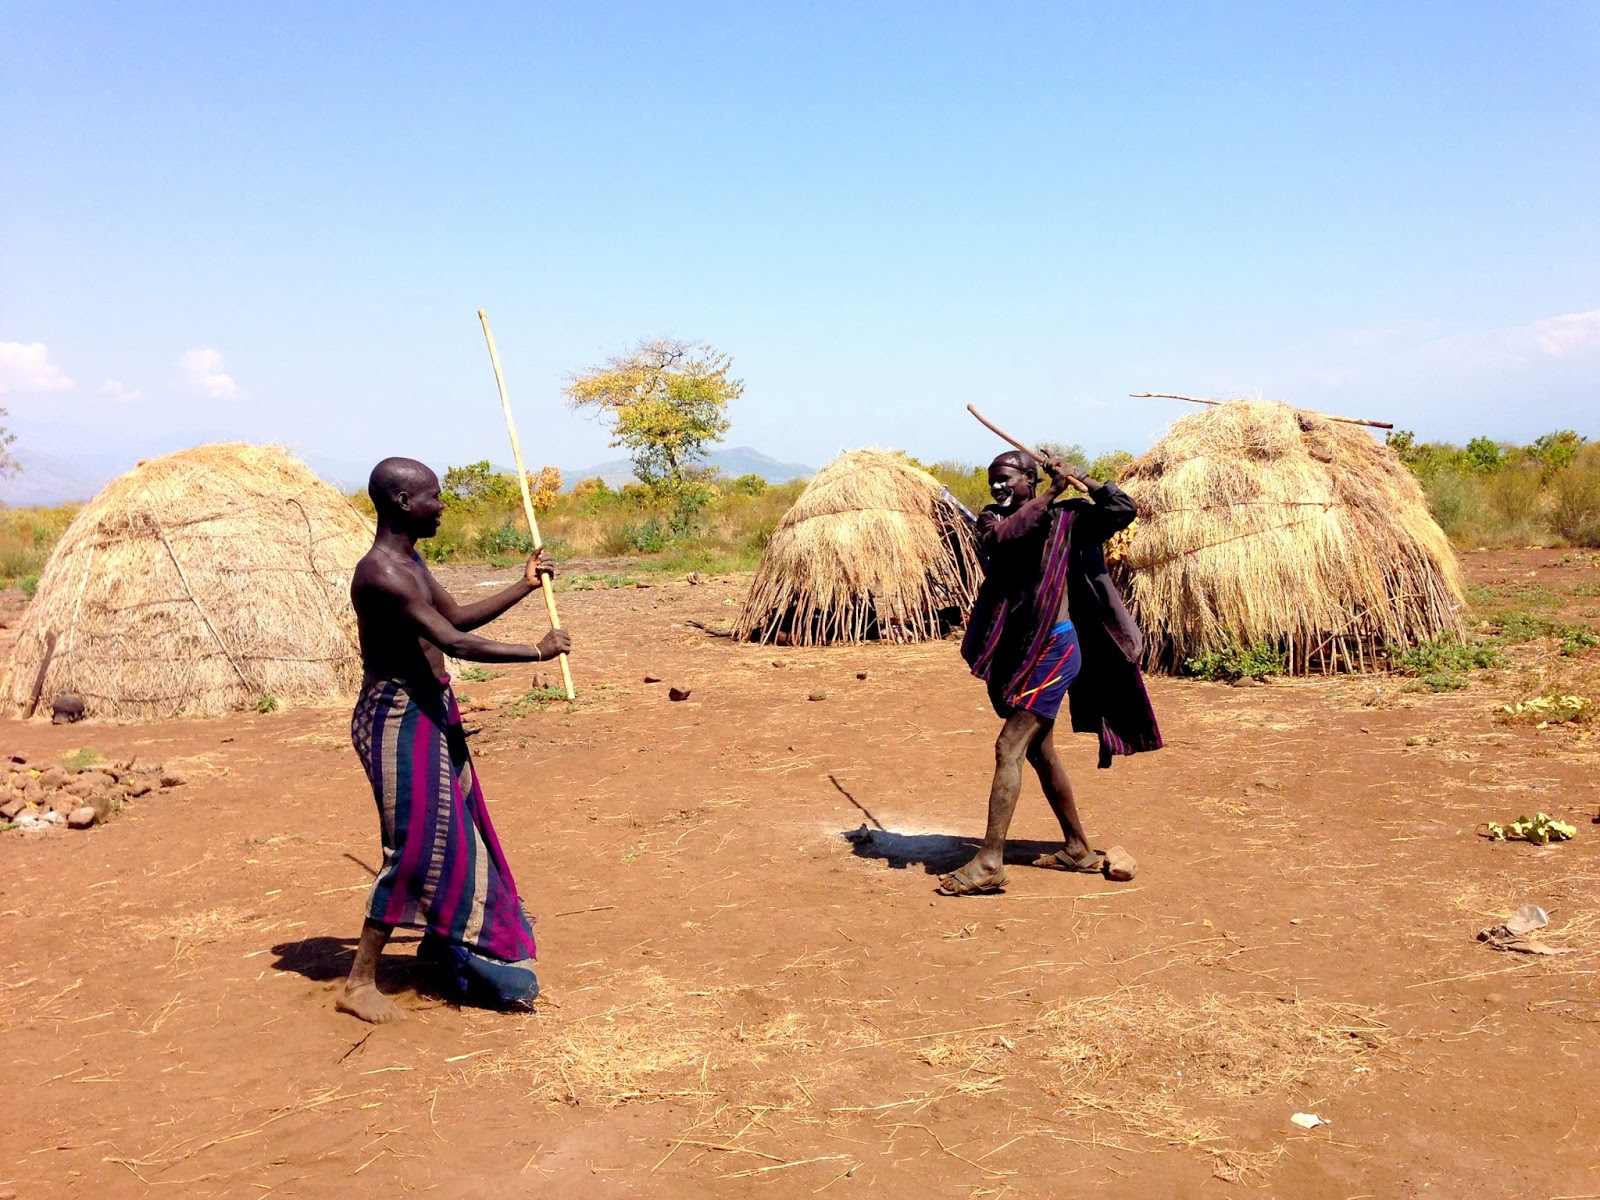 Ritual stick fighting of the Mursi Tribe